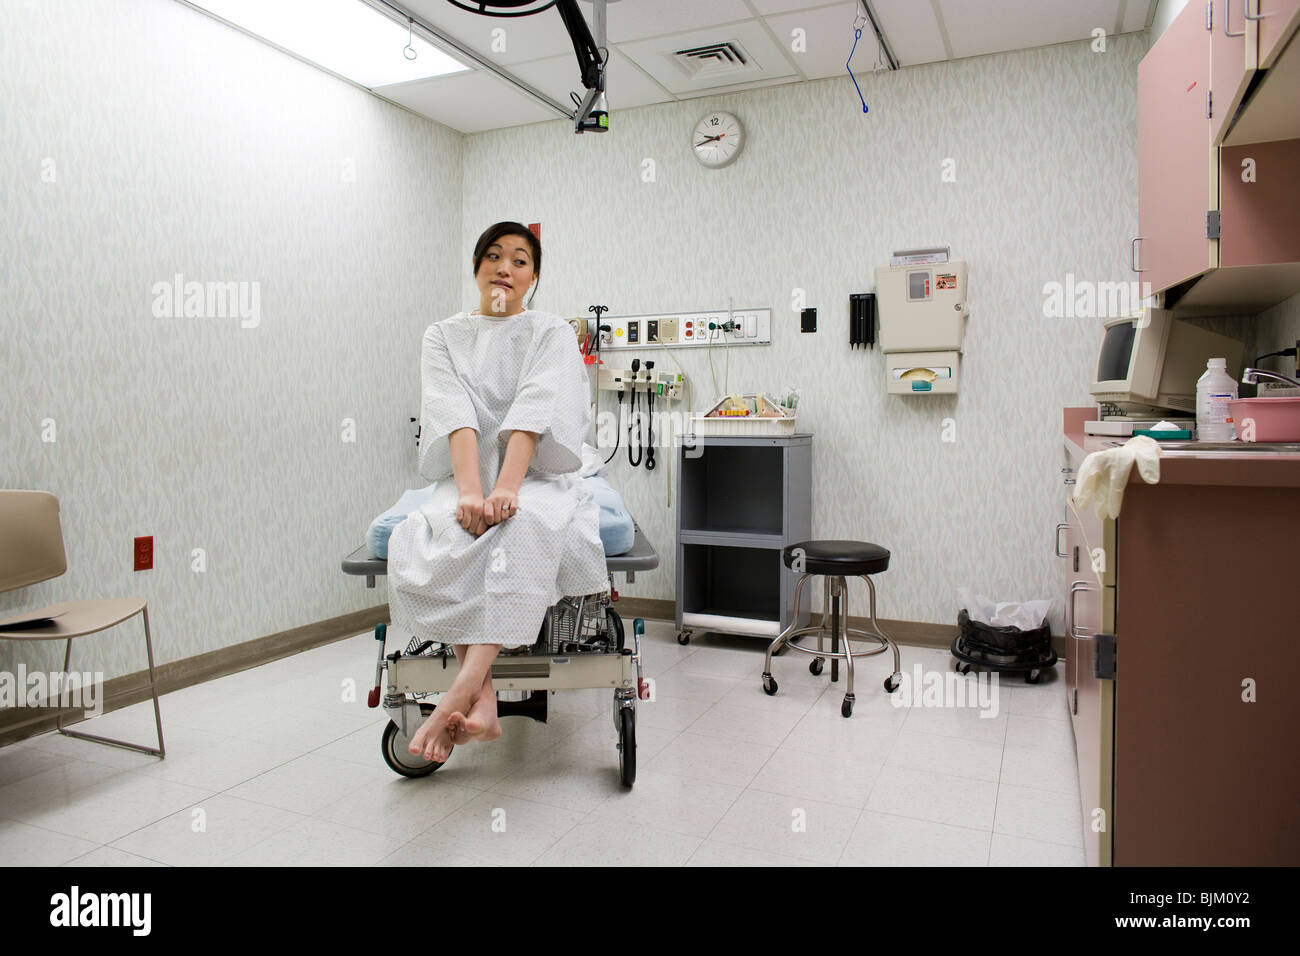 Female patient attendent avec impatience dans l'examen de prix Photo Stock